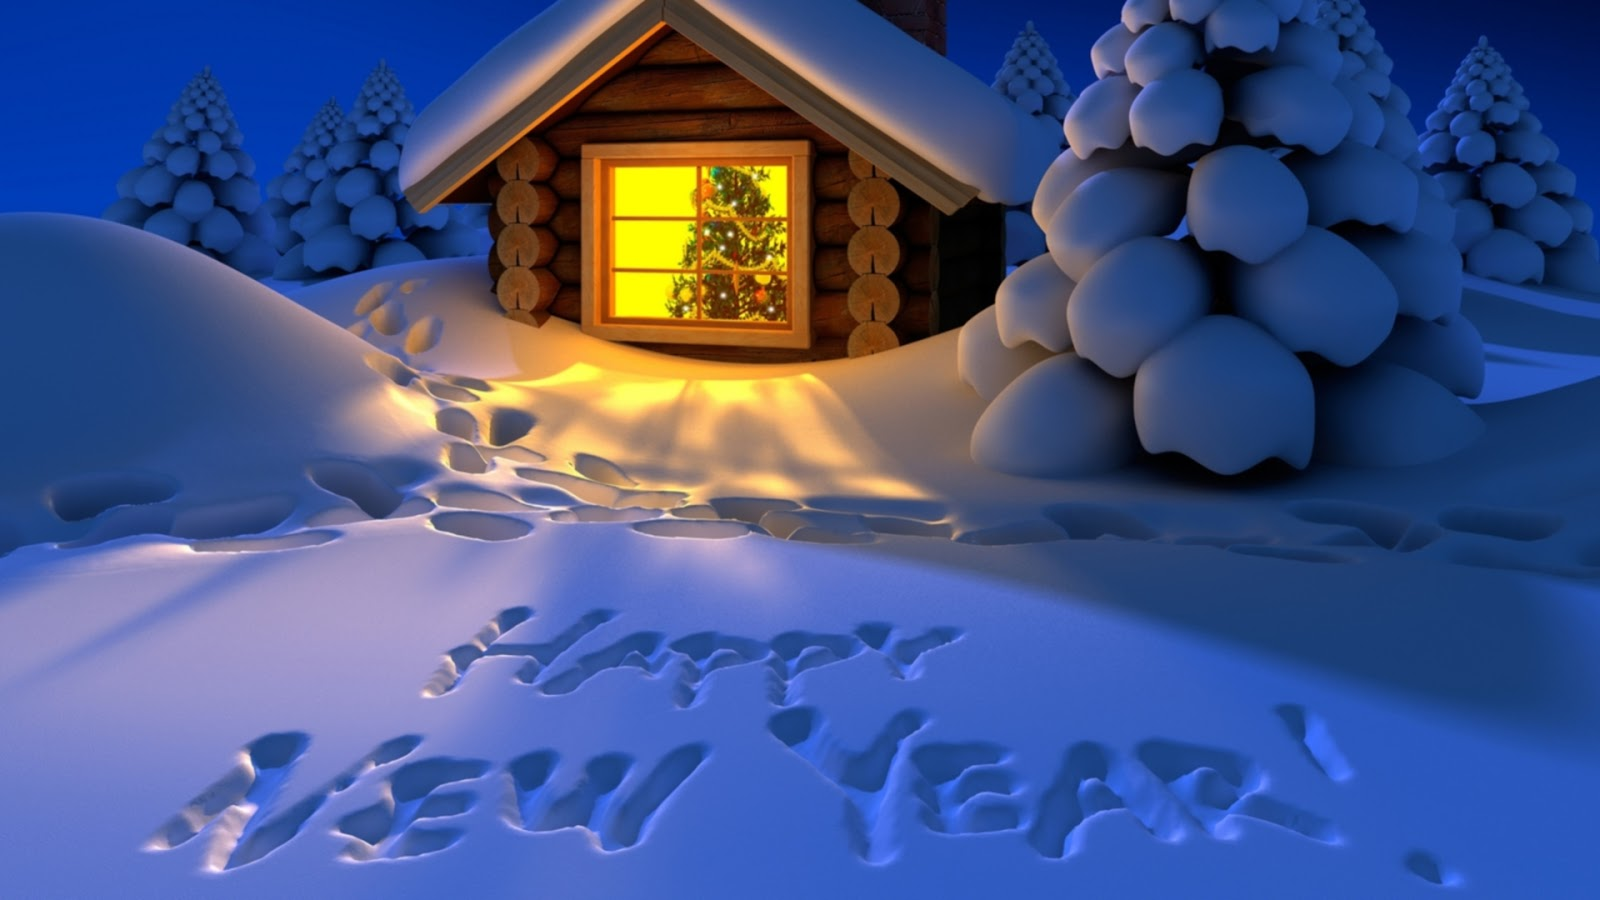 Happy New Year 2016 Animated Wallpaper Images Wishes 1